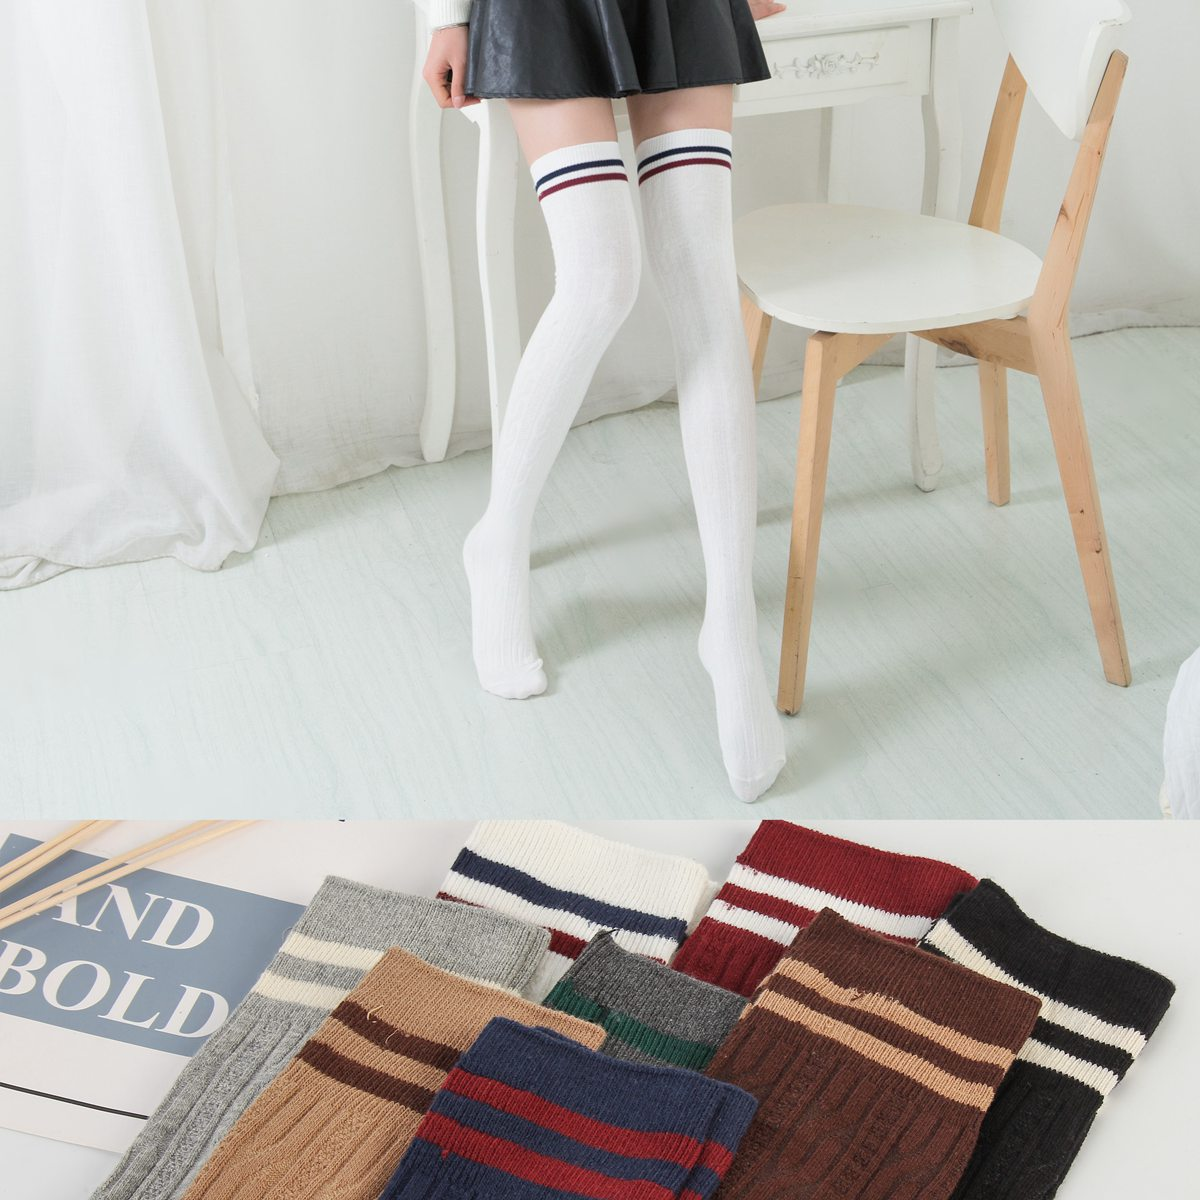 Long stockings over knee women cotton jacquard college ladies autumn and winter thick warm